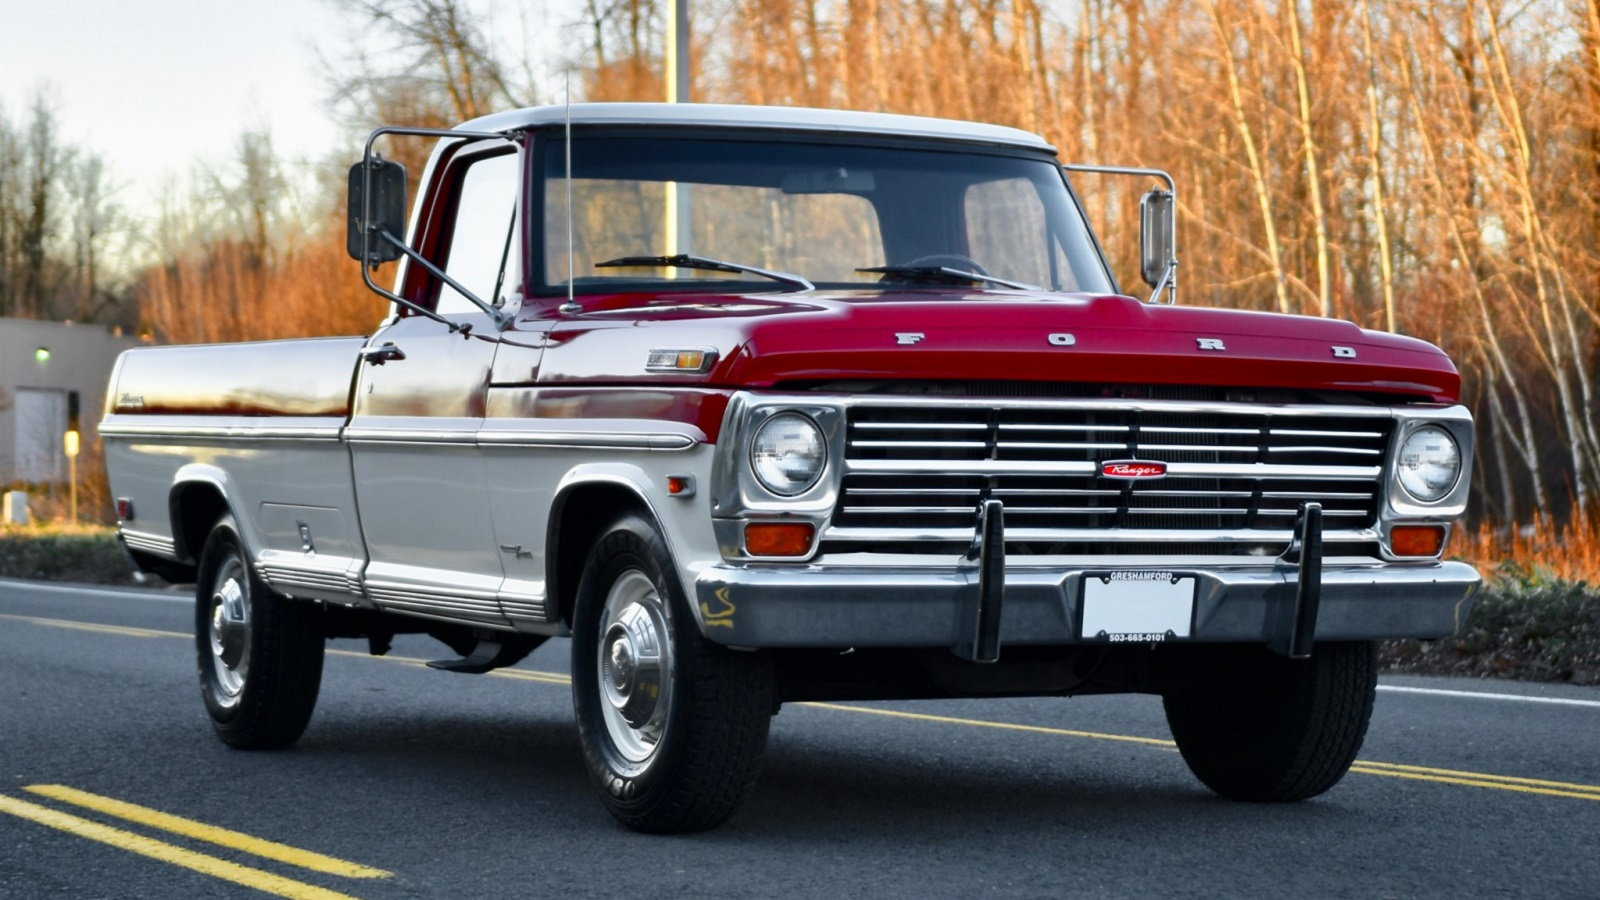 Beautiful 1968 Ford F 250 Camper Special Looks No Worse For Wear Ford Trucks